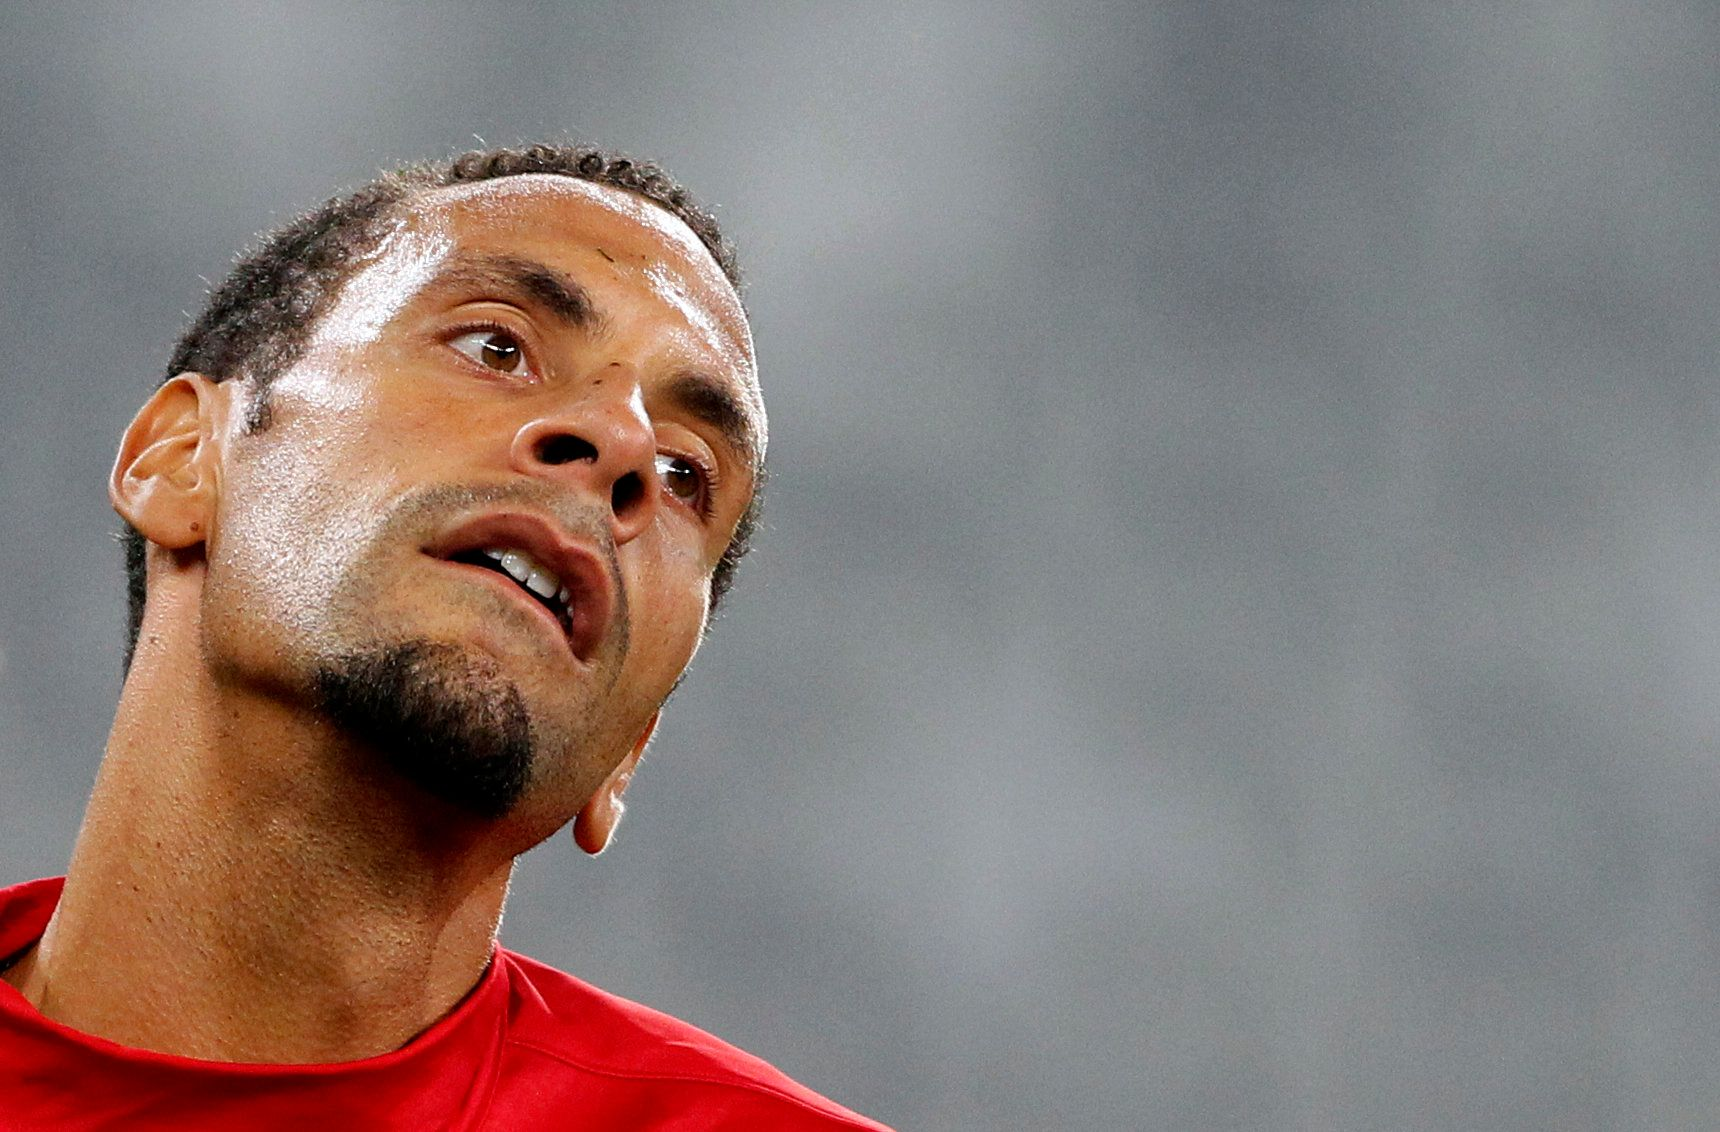 Rio Ferdinand On Figuring Out How To Talk To His Children After His Wife